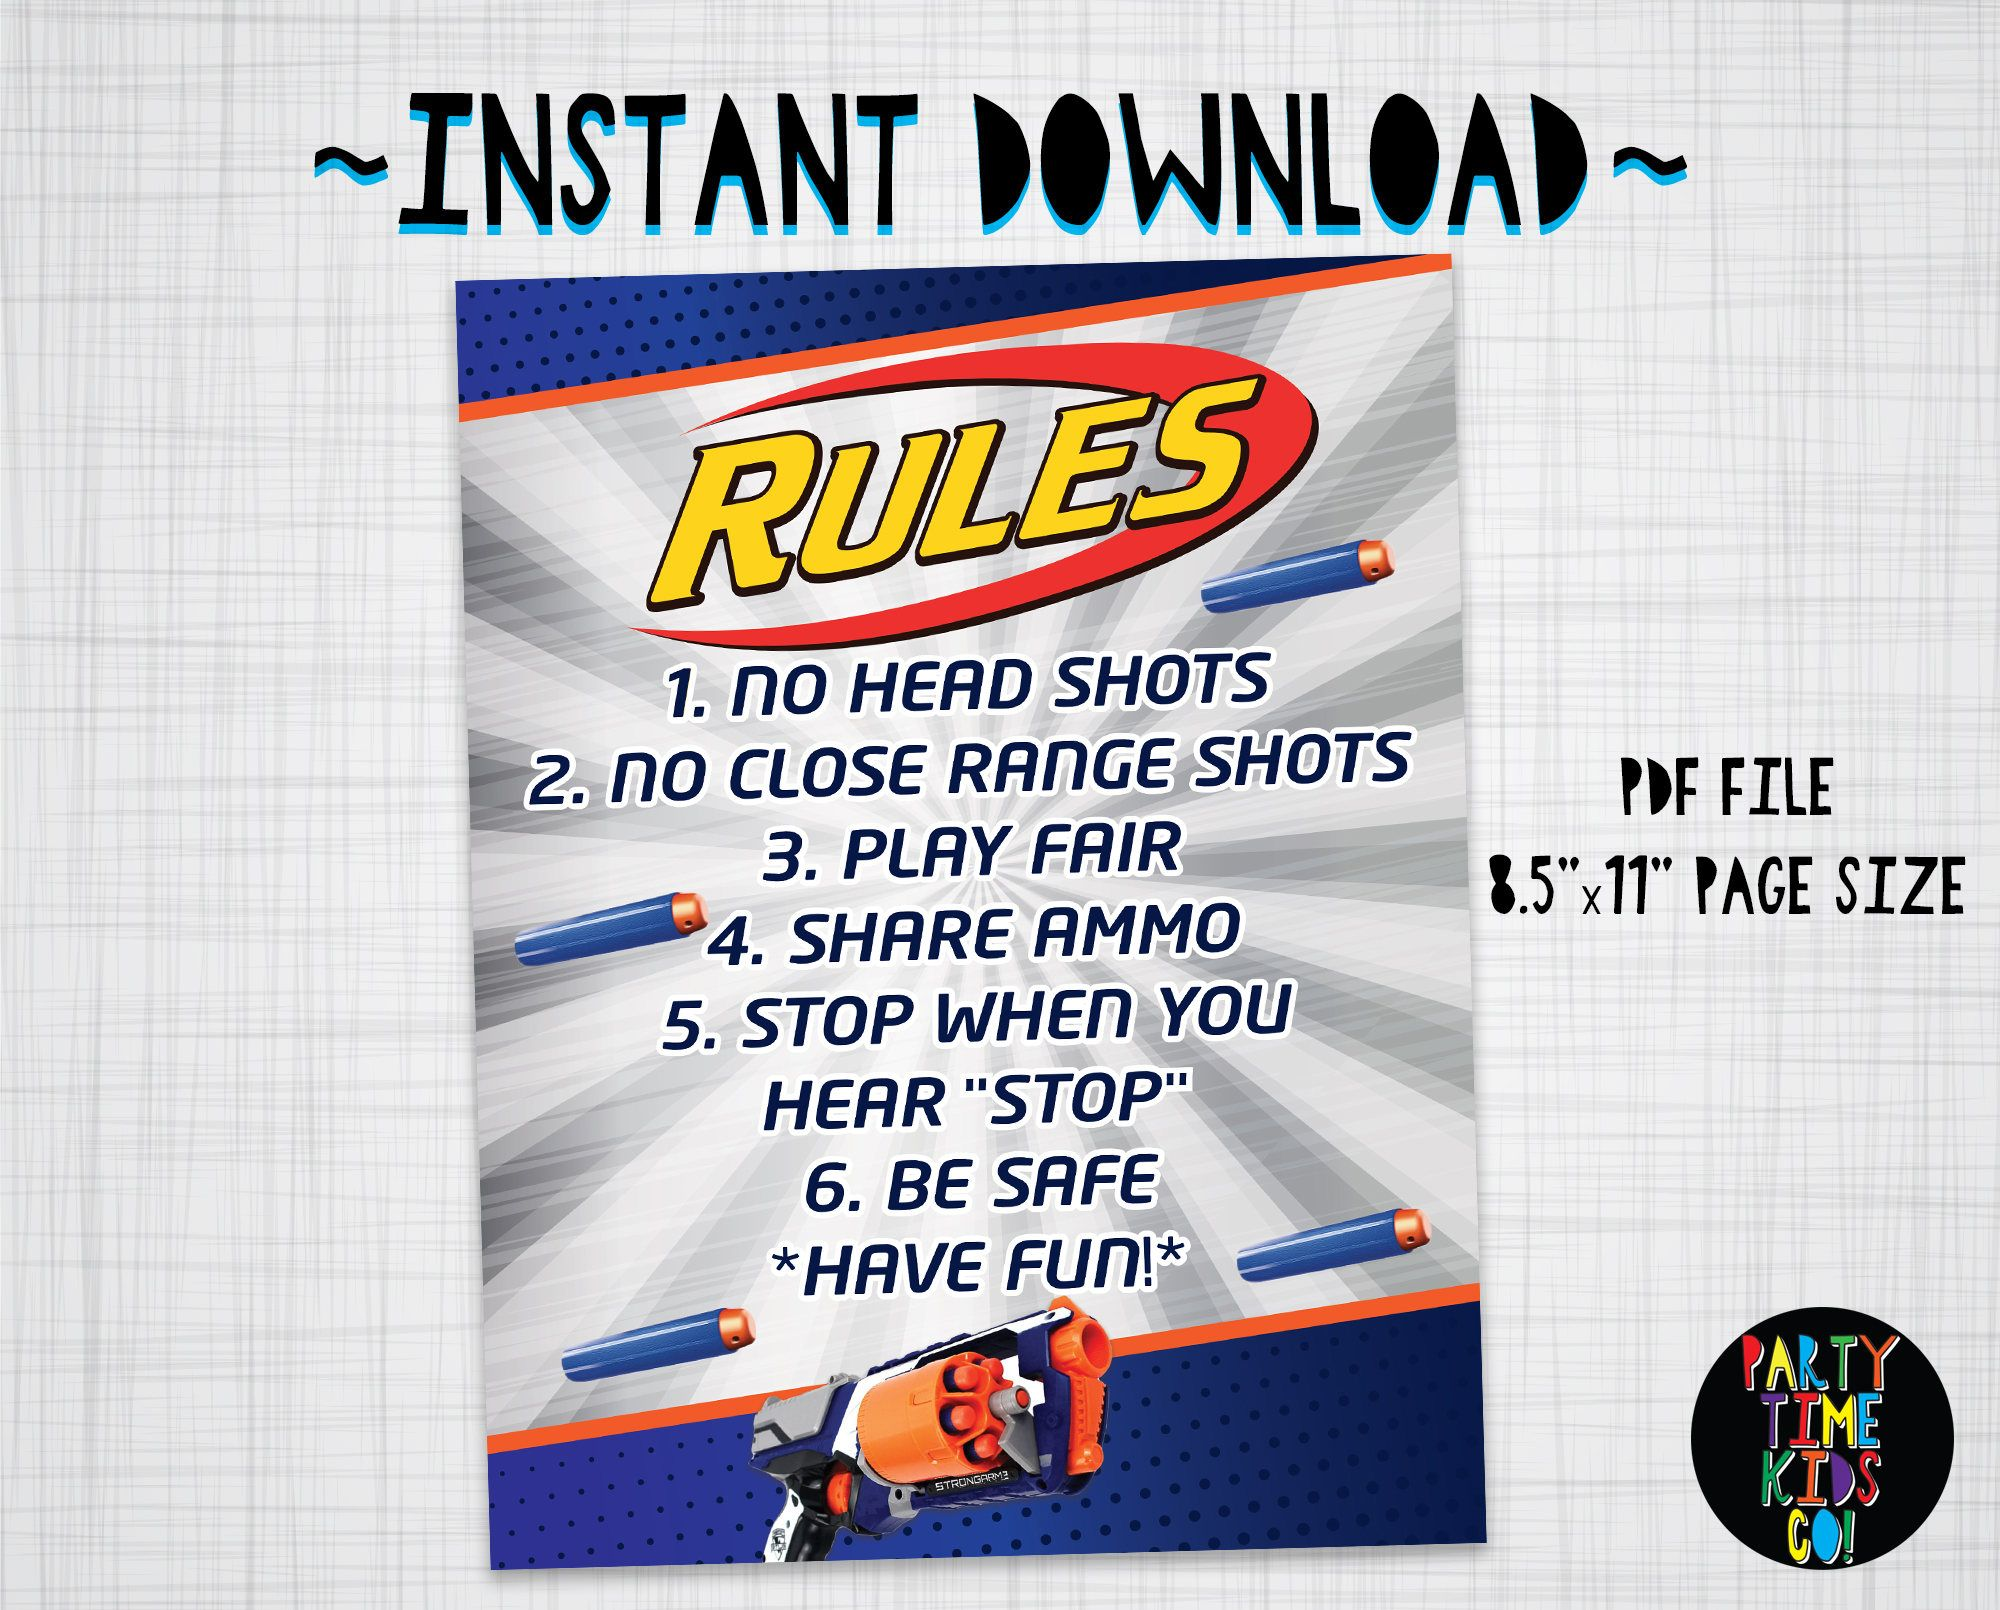 Nerf Food Tent Labels Nerf Wars Party Decorations Party Supplies - 20 Folding Cards INSTANT DOWNLOAD with matching Invitation Availa  sc 1 st  Pinterest & Nerf Food Tent Labels Nerf Wars Party Decorations Party Supplies ...